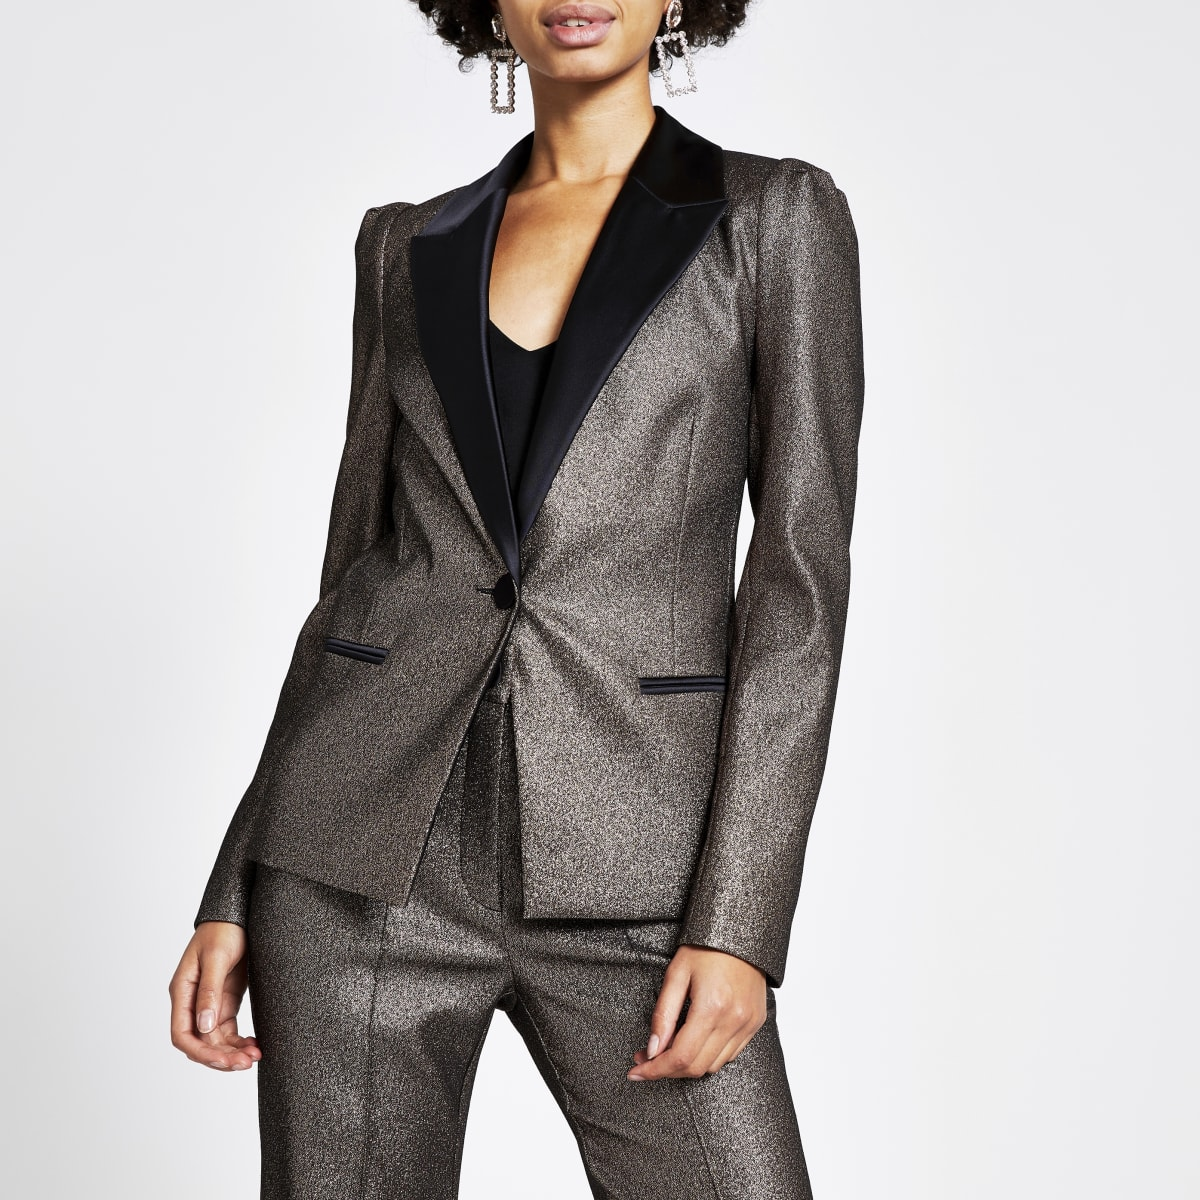 Bronze metallic sleeve blazer